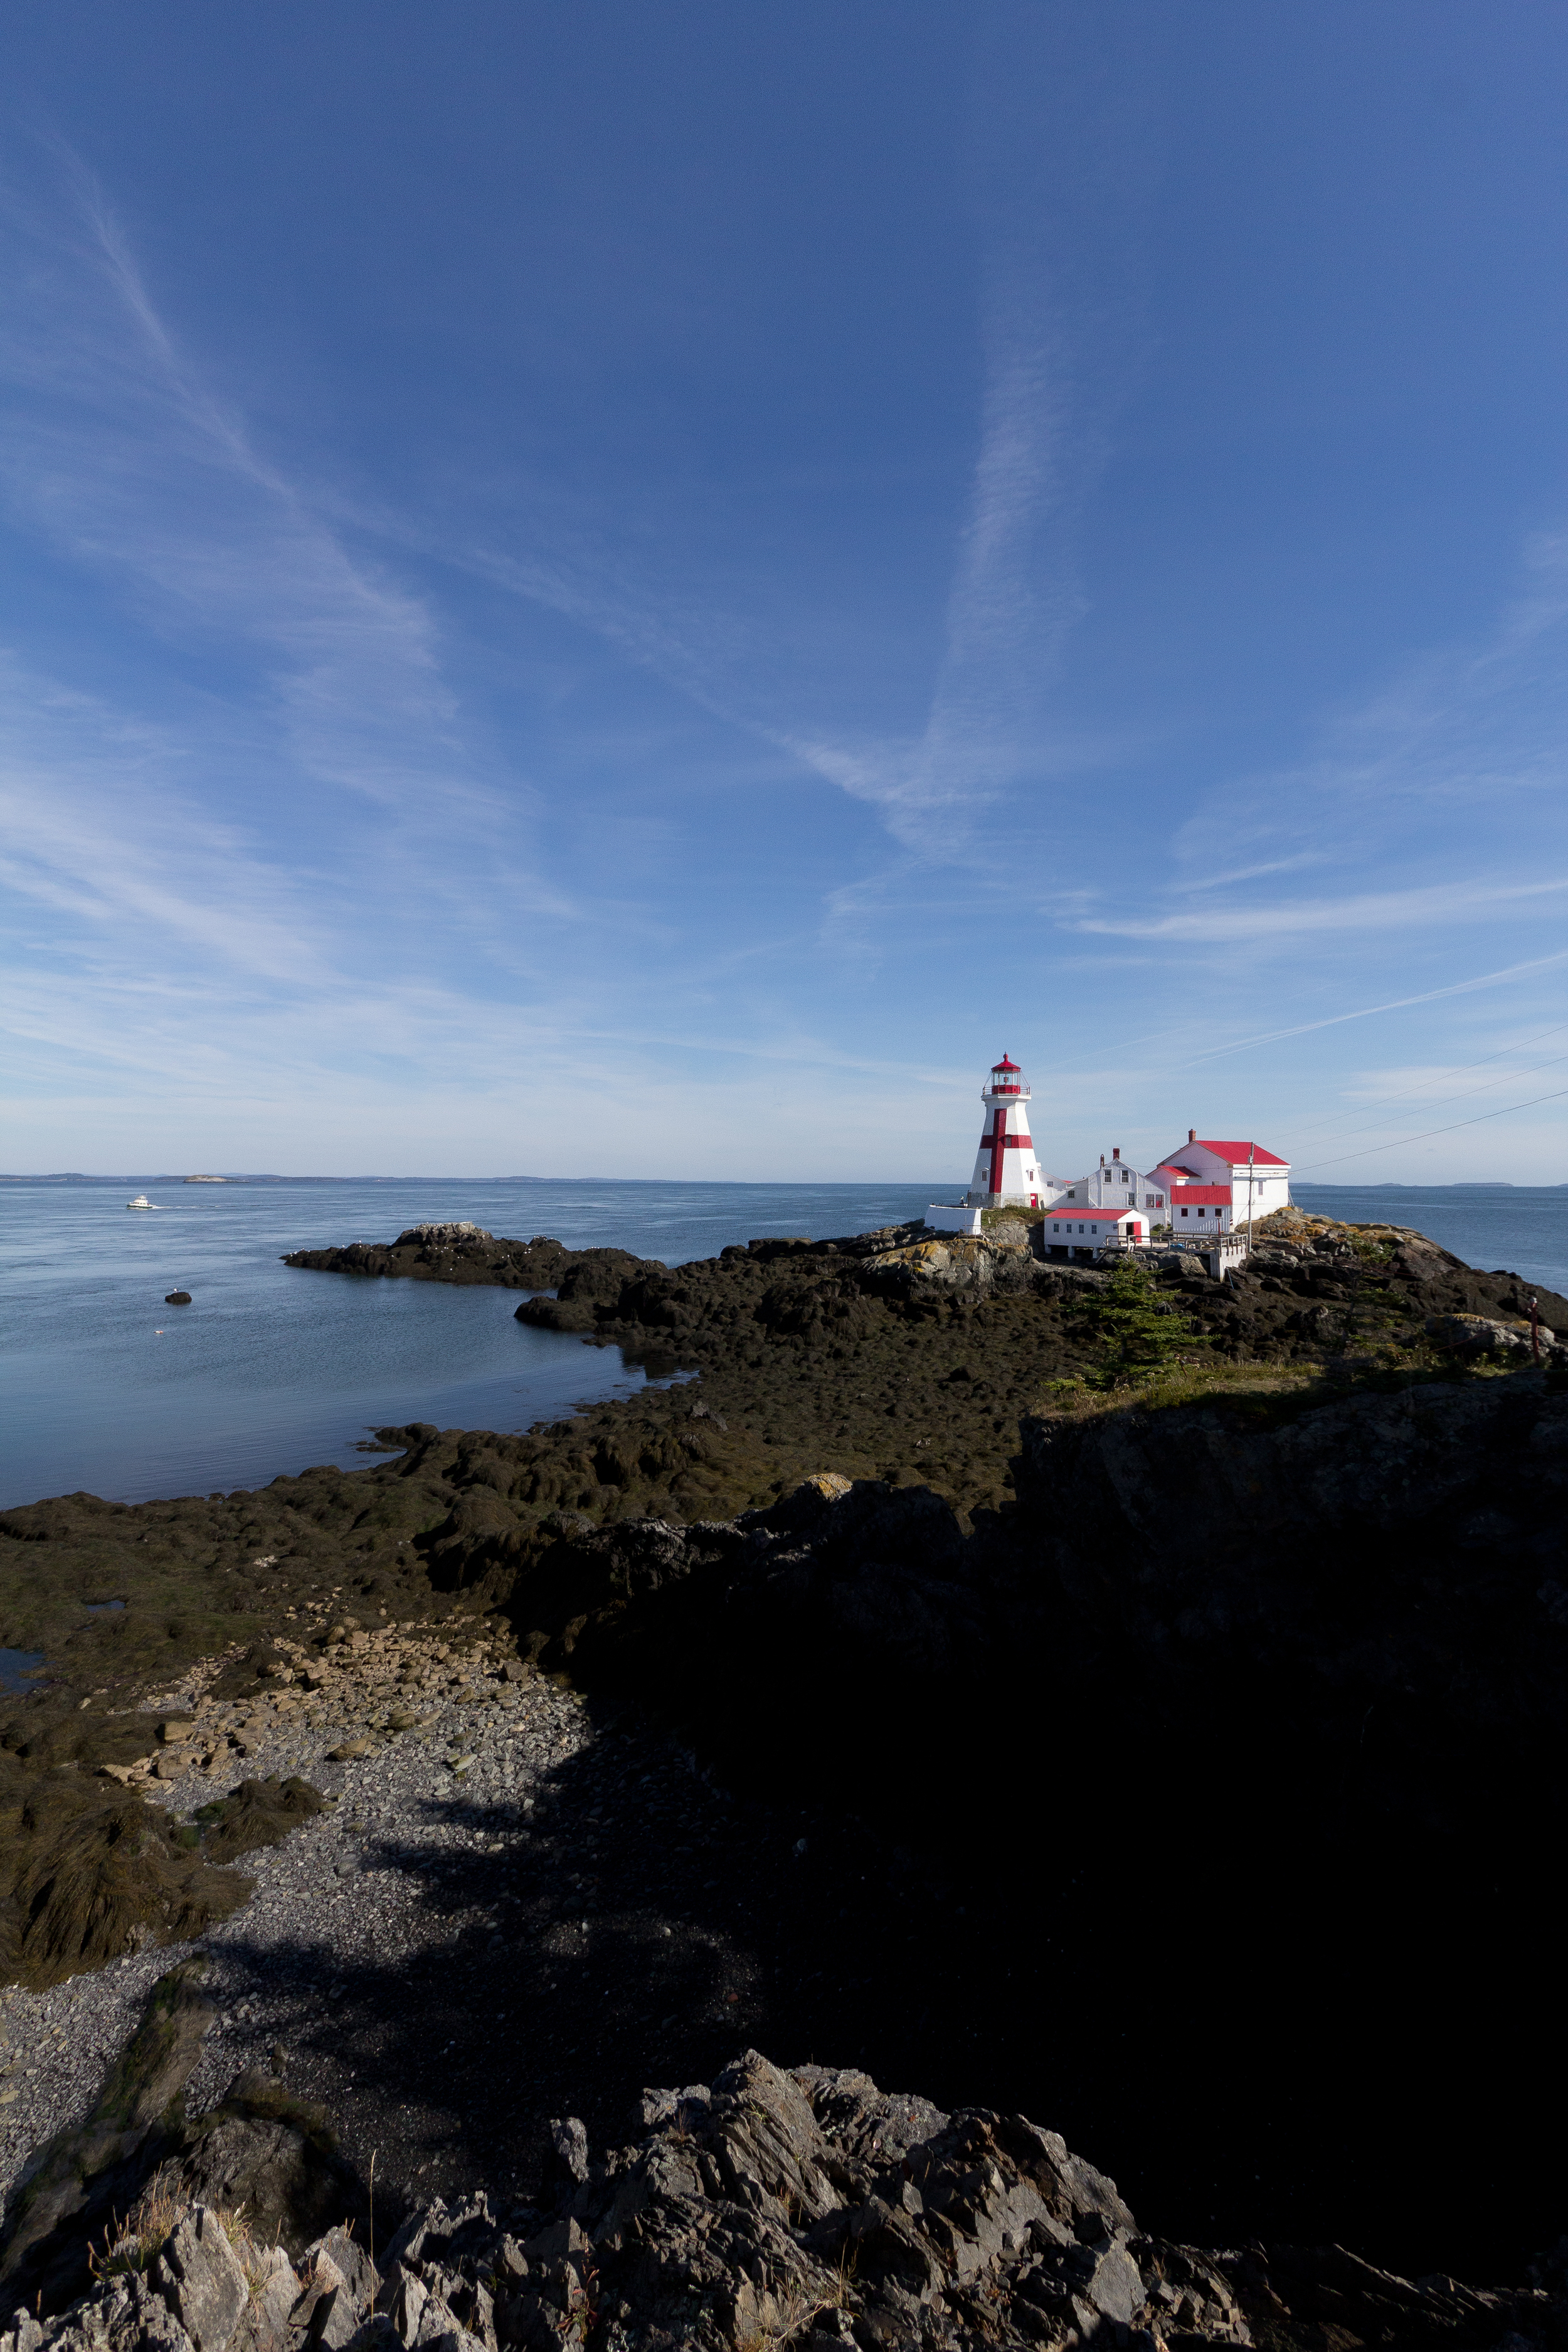 East Quoddy Head Light